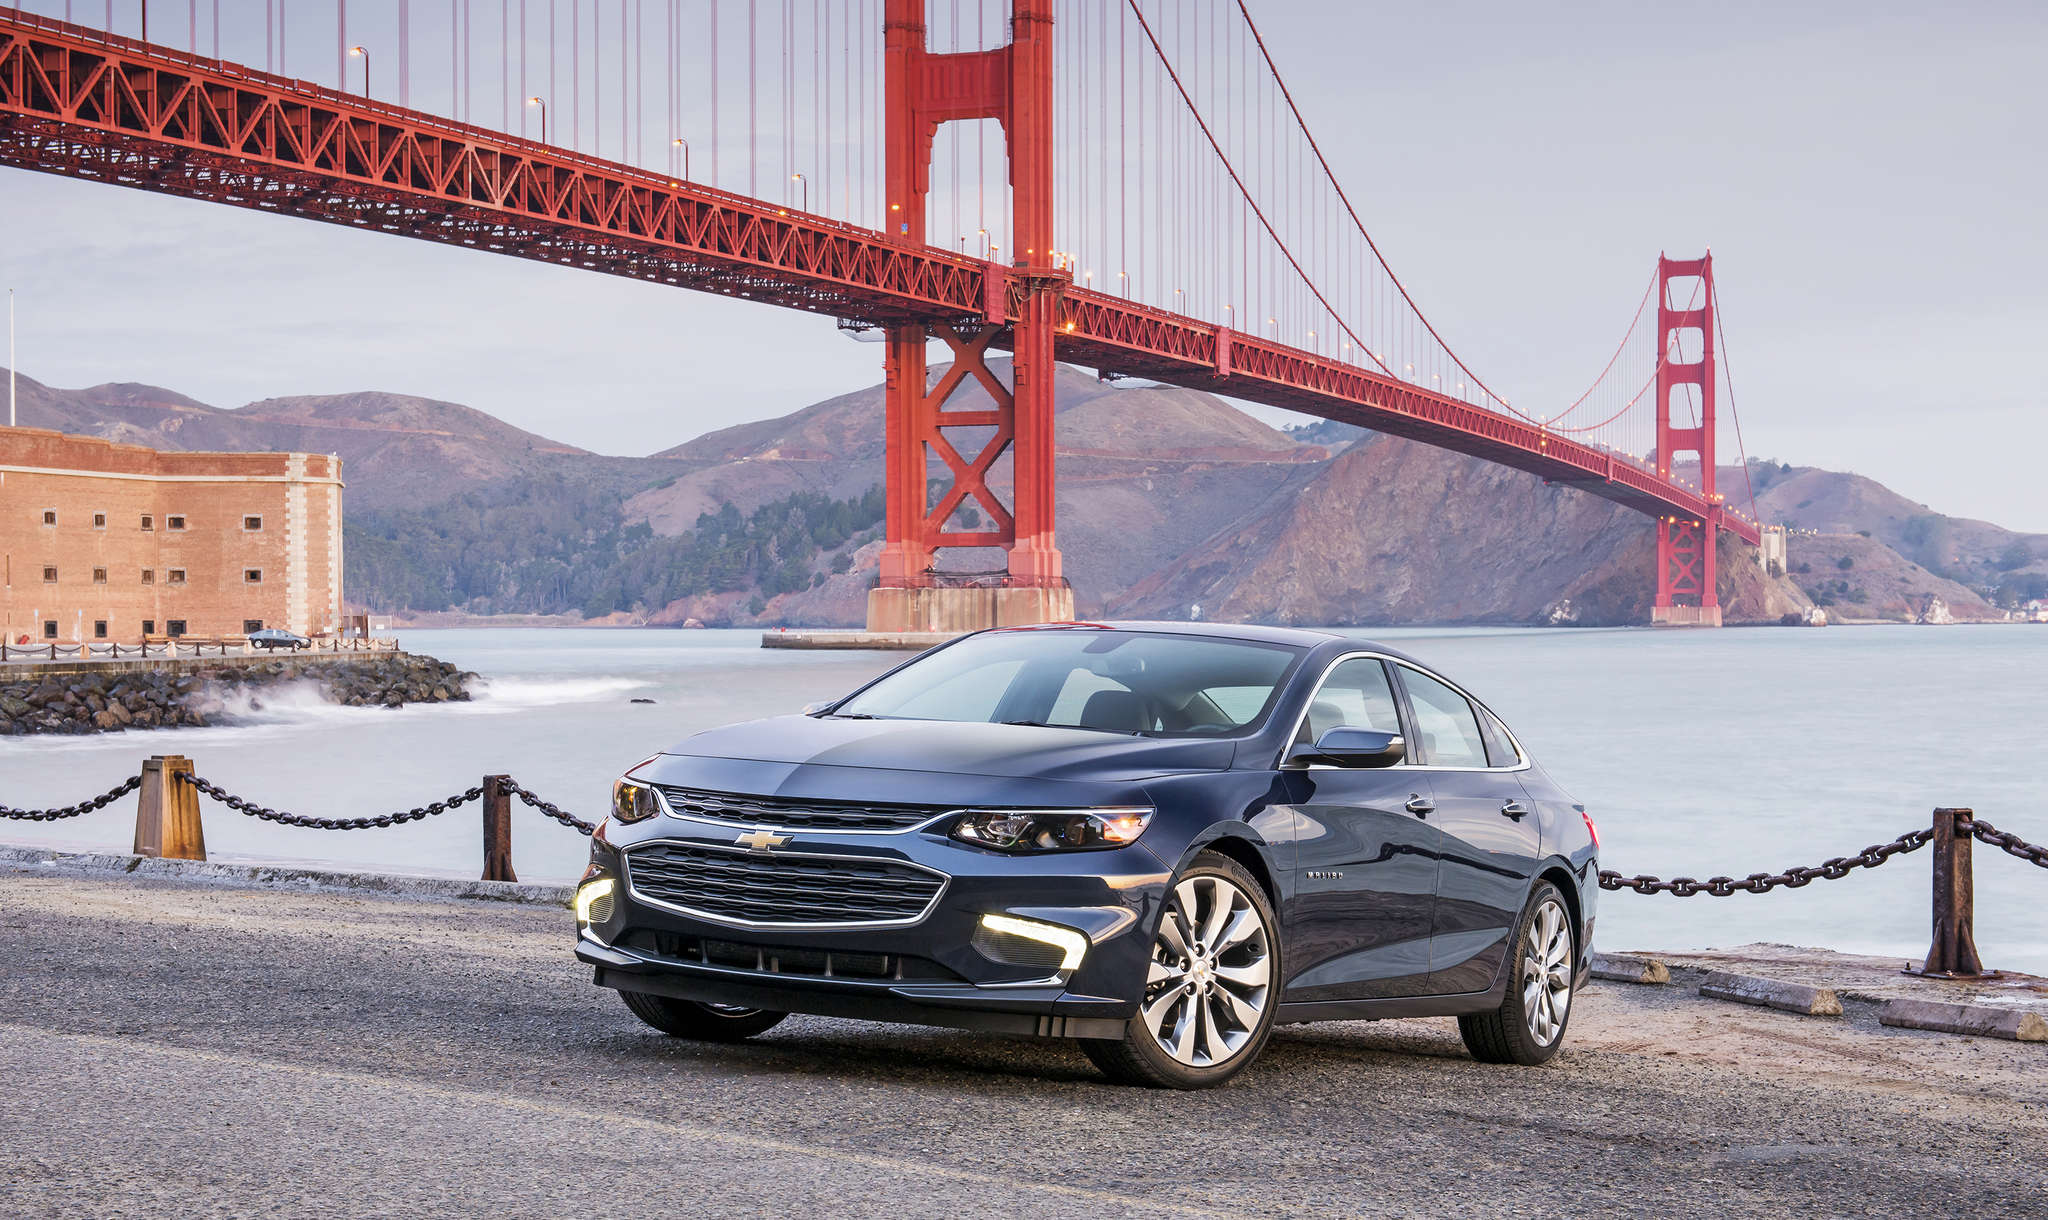 The Malibu, after a stem-to-stern overhaul , is hard to distinguish from revamped big brother Impala - and that´s a good thing.